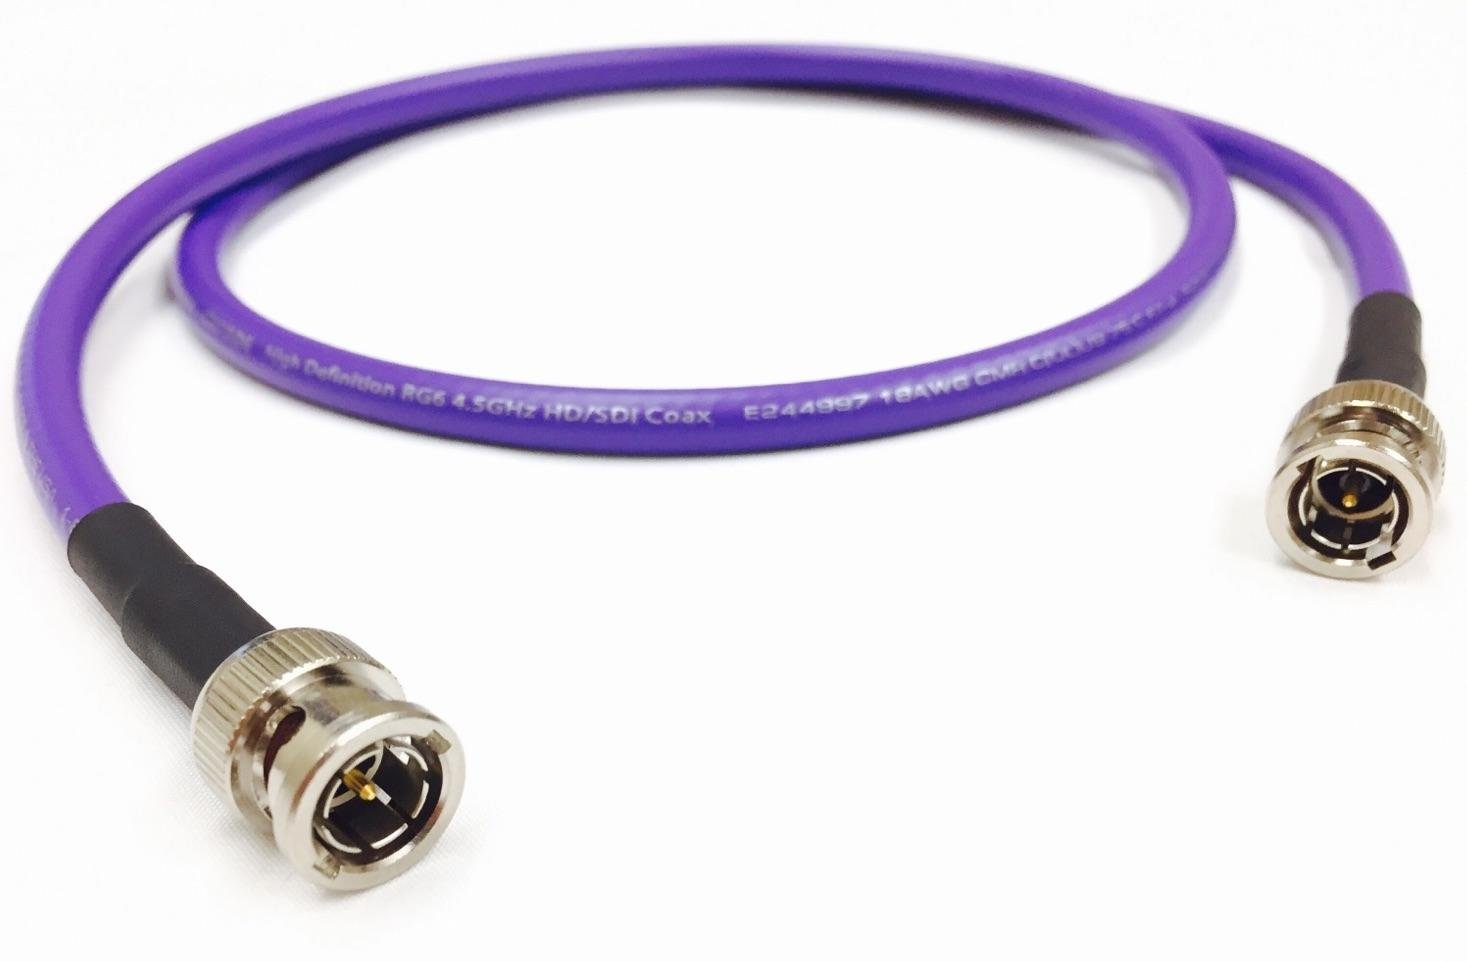 Amazon.com: Custom Cable Connection 25 Foot HD-SDI 3G RG6 BNC to BNC Video Coaxial Cable (75 Ohm) Purple 4.5Ghz - Made in The USA - (108301-25PUR): Home ...